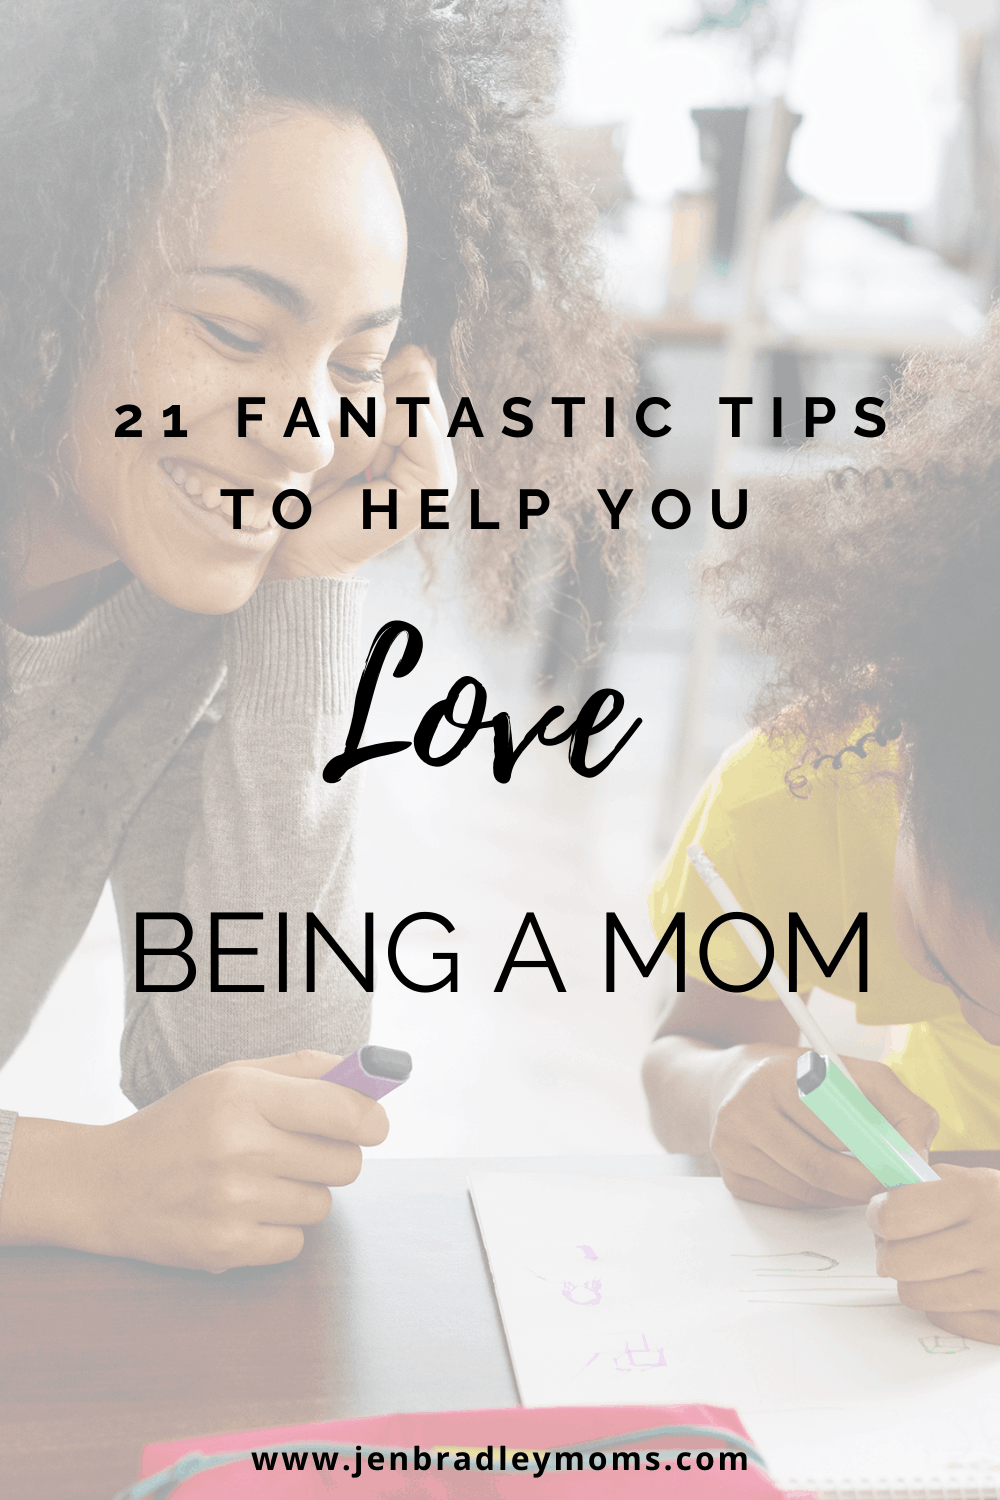 21 Great Ideas to Help You Be a Happy Stay-at-Home Mom